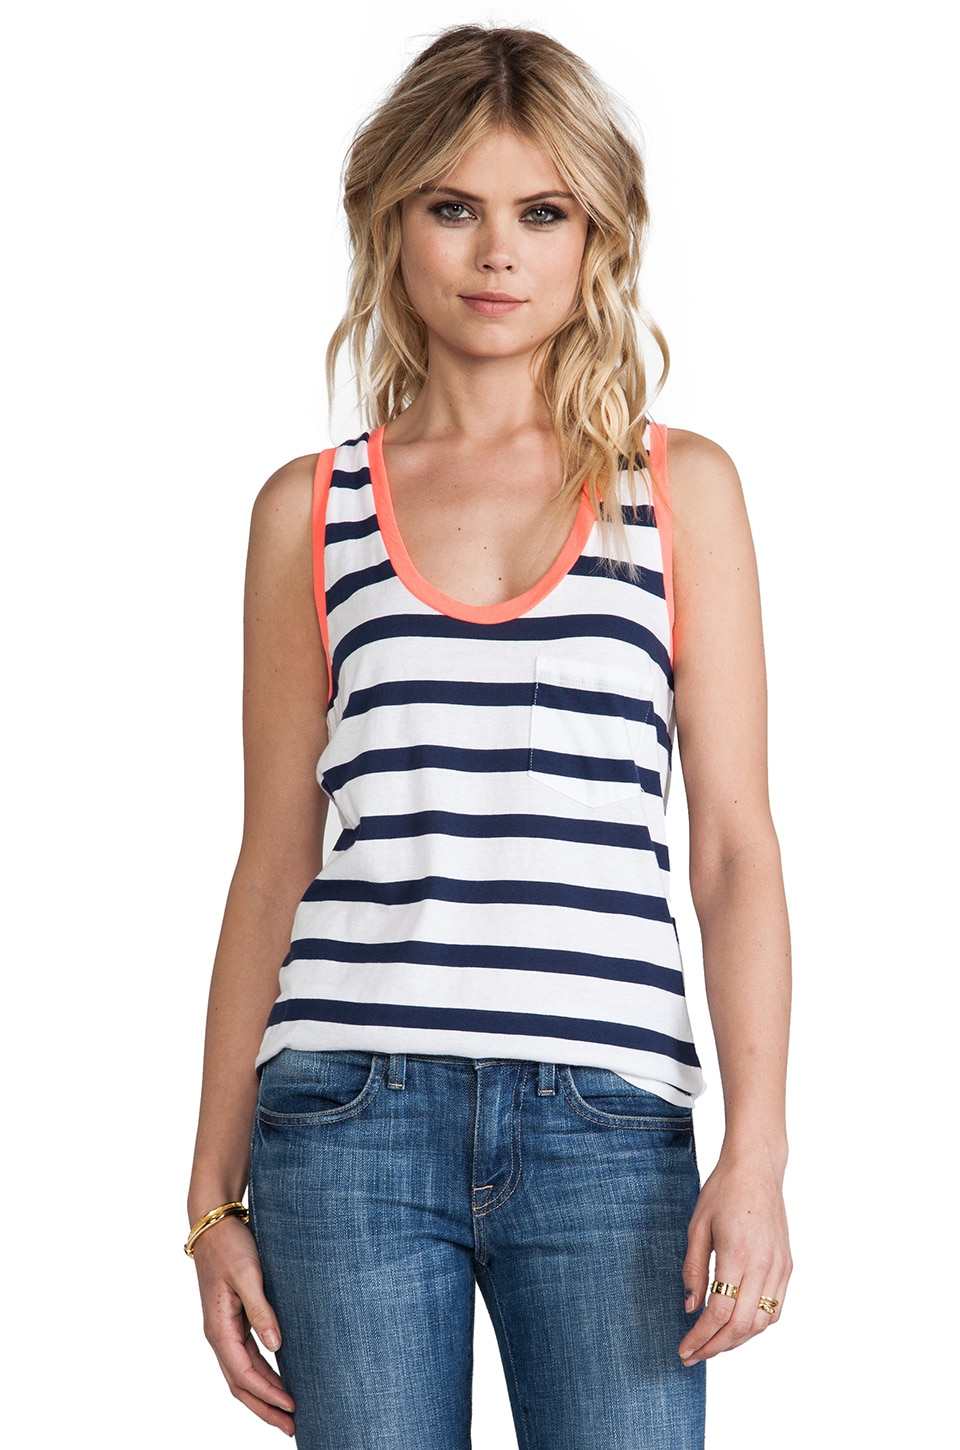 Bobi Light Weight Jersey Stripe Tank in Marina & White & Tetra